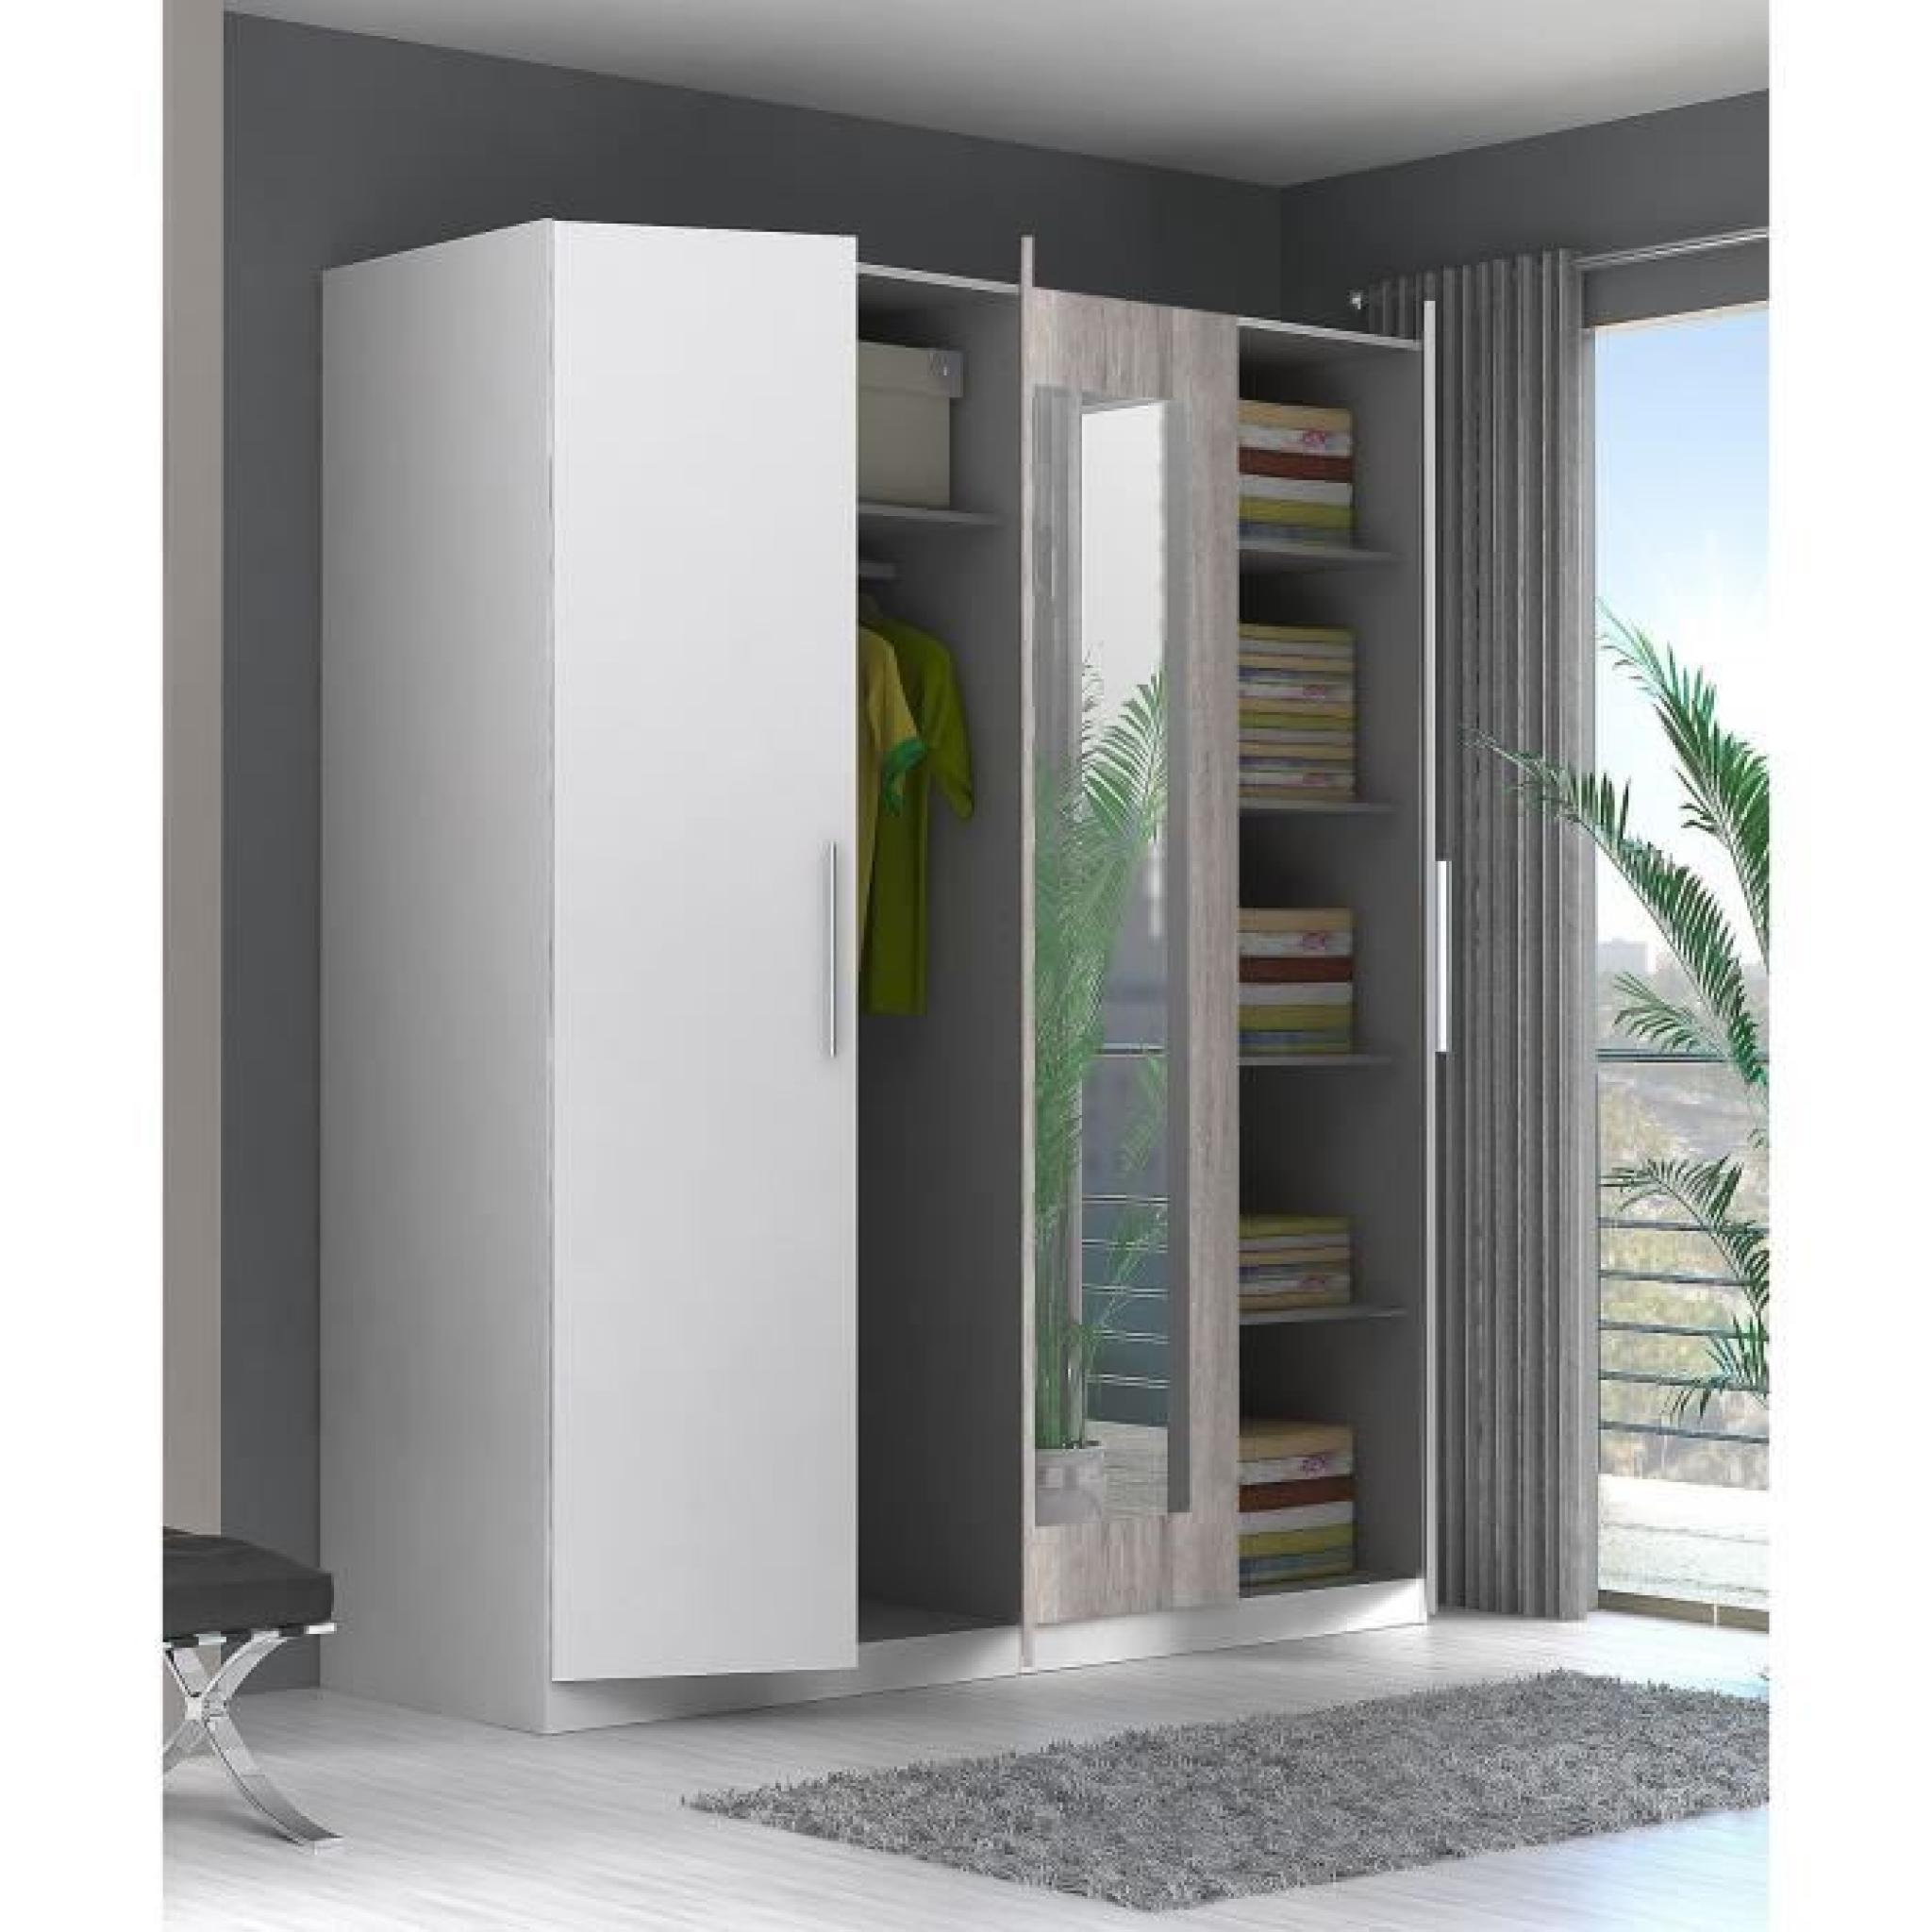 finlandek armoire de chambre siisti 180 cm blanc et d cor ch ne sable achat vente armoire de. Black Bedroom Furniture Sets. Home Design Ideas